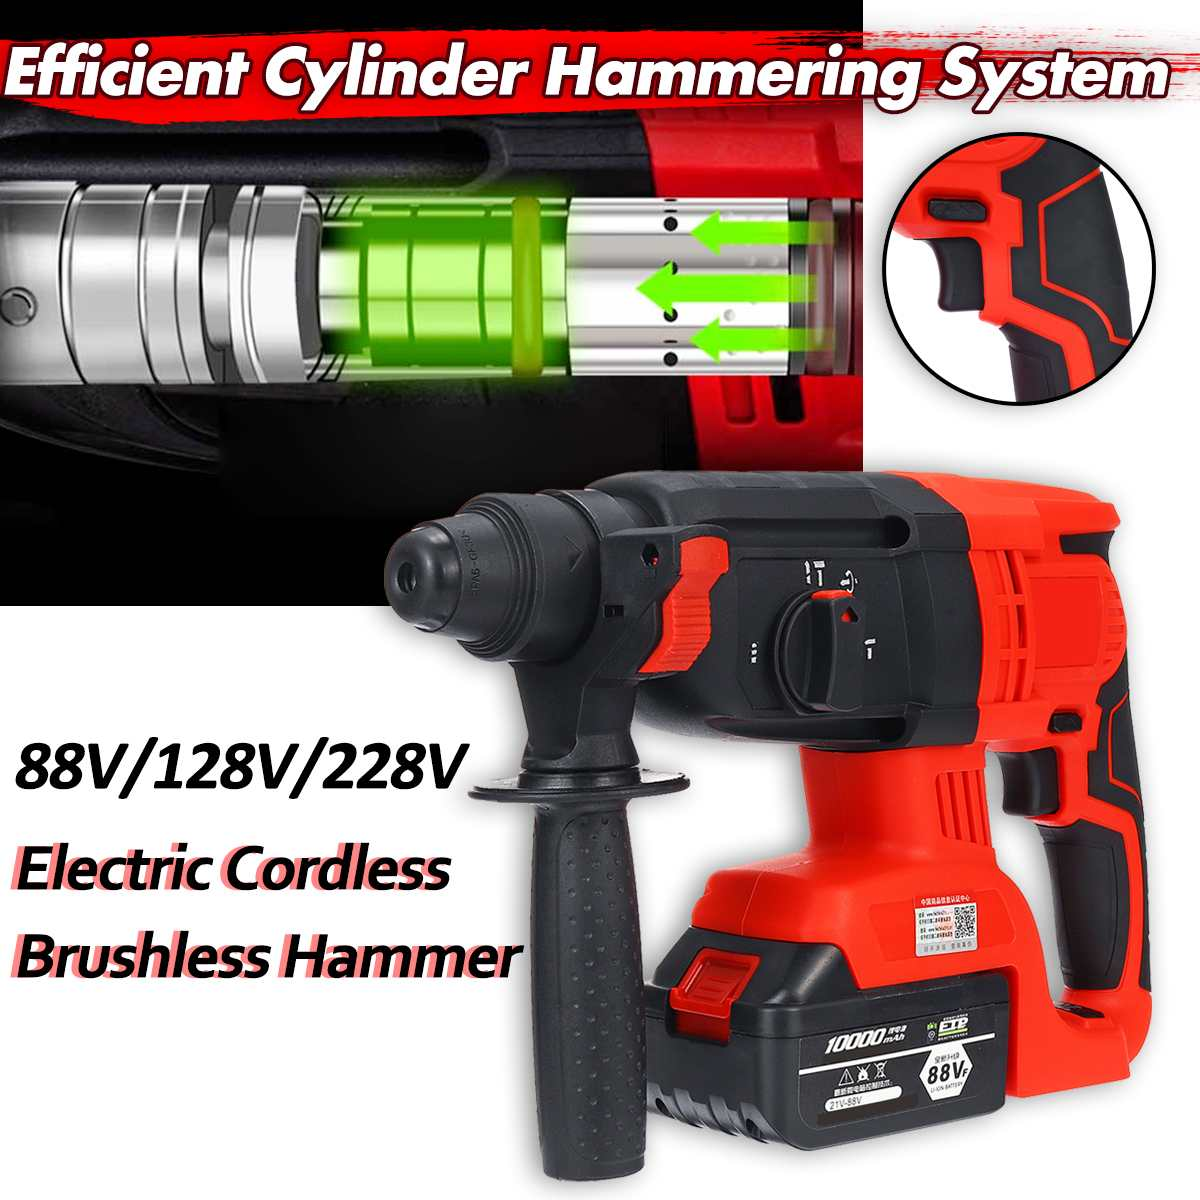 3 IN 1 110-240V 88V/128V/228V Electric Cordless Brushless Hammer Drill Impact Power Drill With Lithium Battery Rechargea